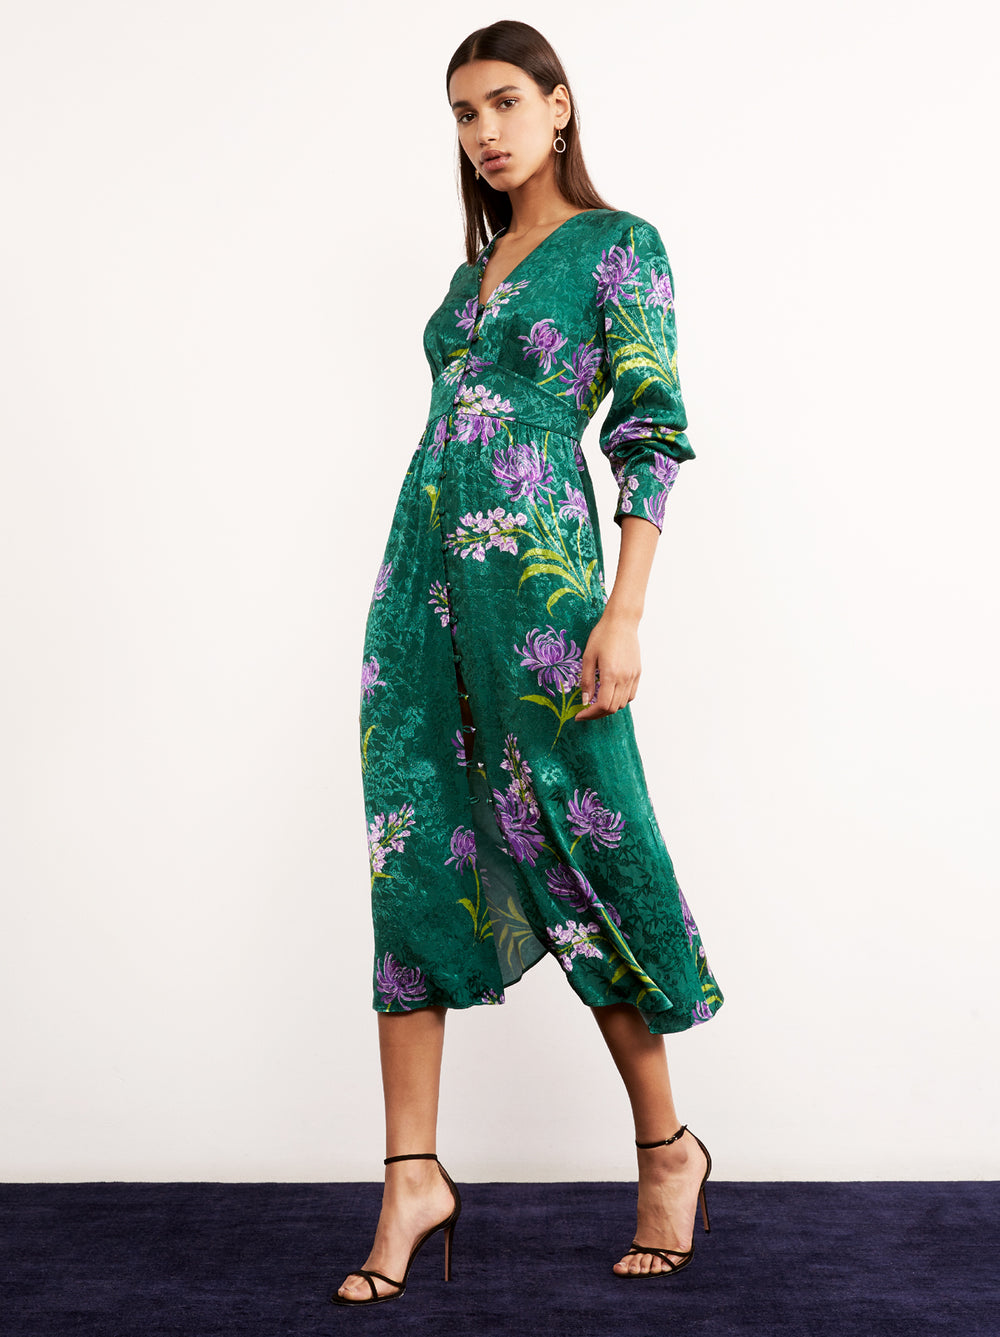 Clementine Green Floral Print Vintage Midi Dress by KITRI Studio